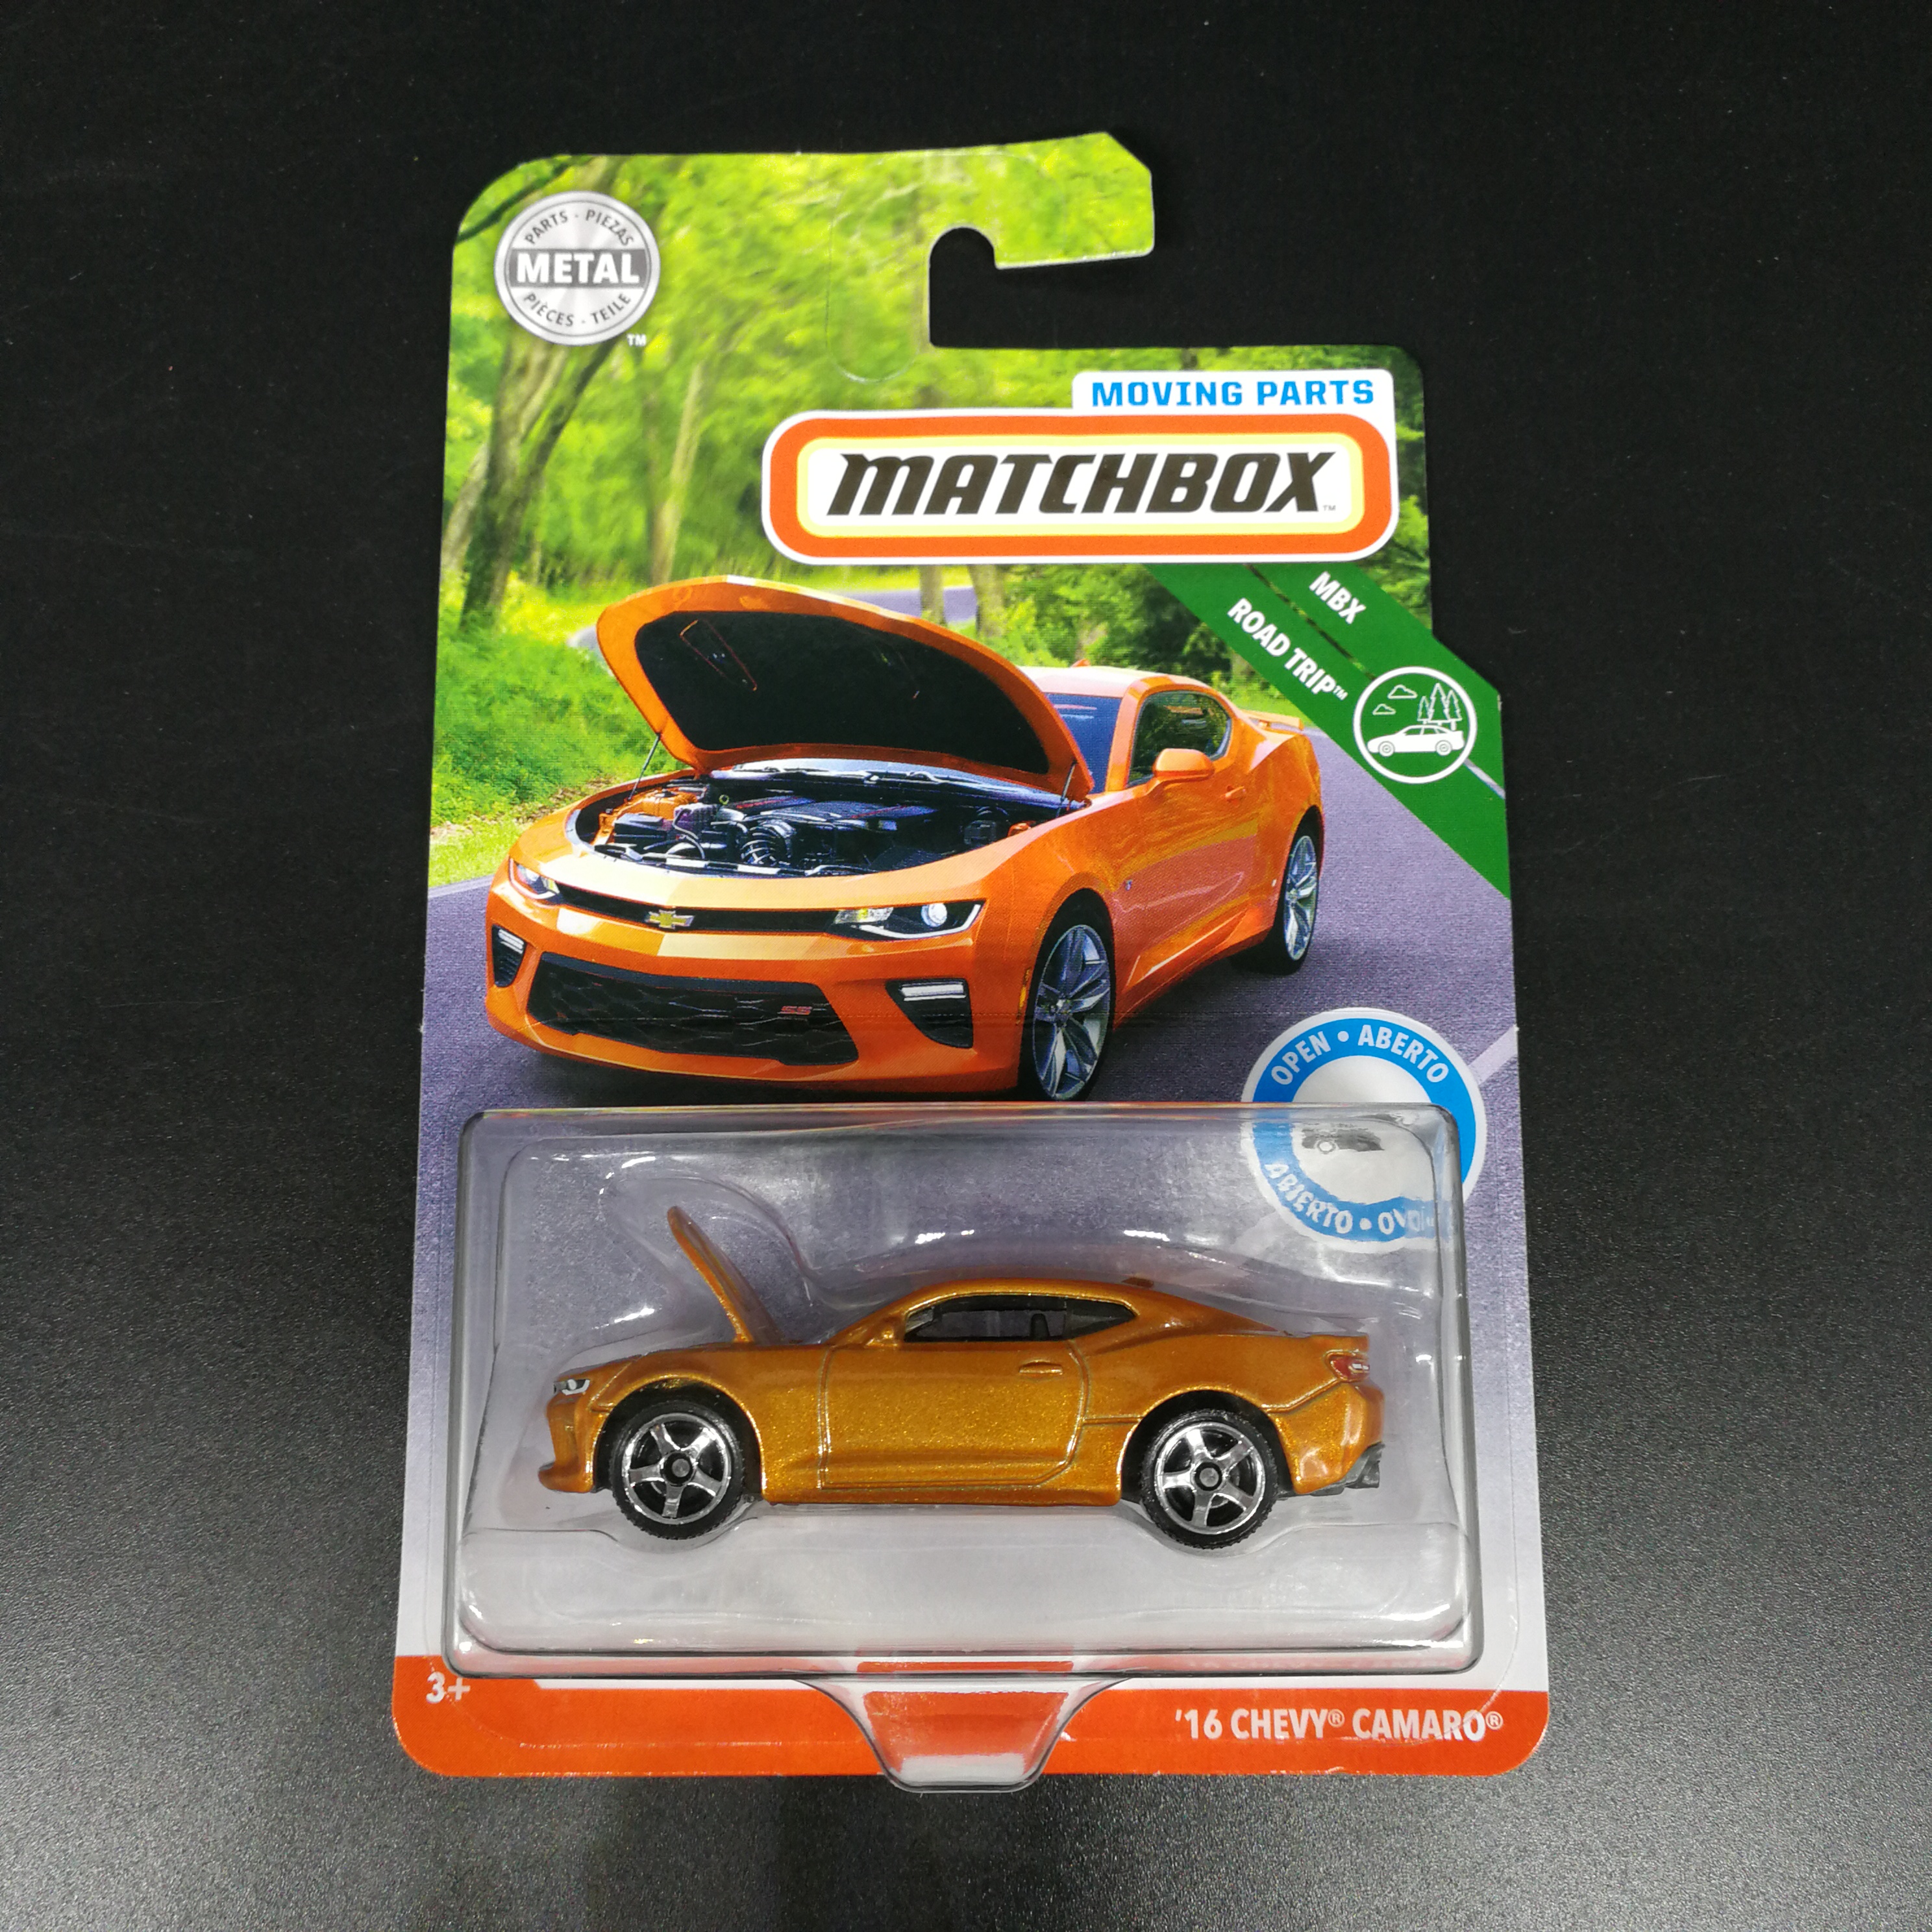 2019  Matchbox Car 1:64 Sports 16 CHEVY CAMARO Metal Material Body Race Car Collection Alloy Car Gift